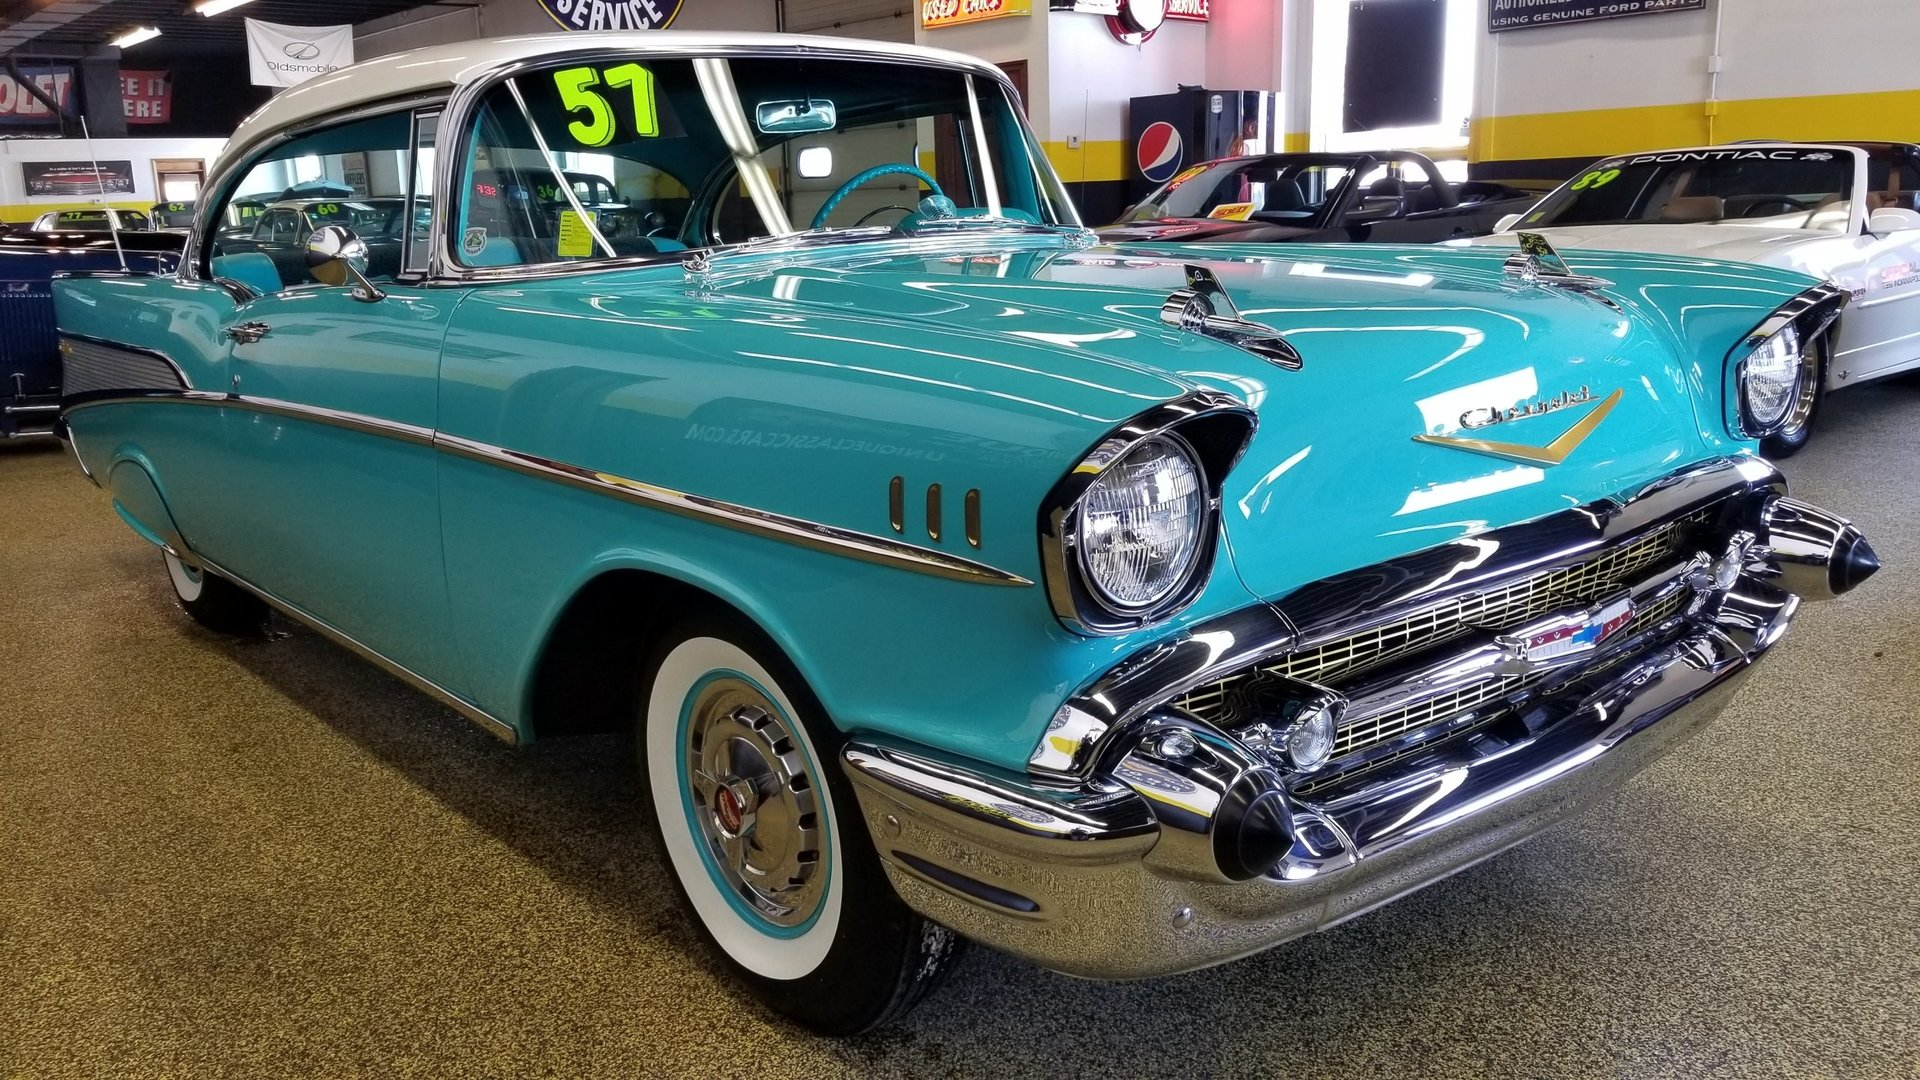 338945220d2da_hd_1957-chevrolet-bel-air